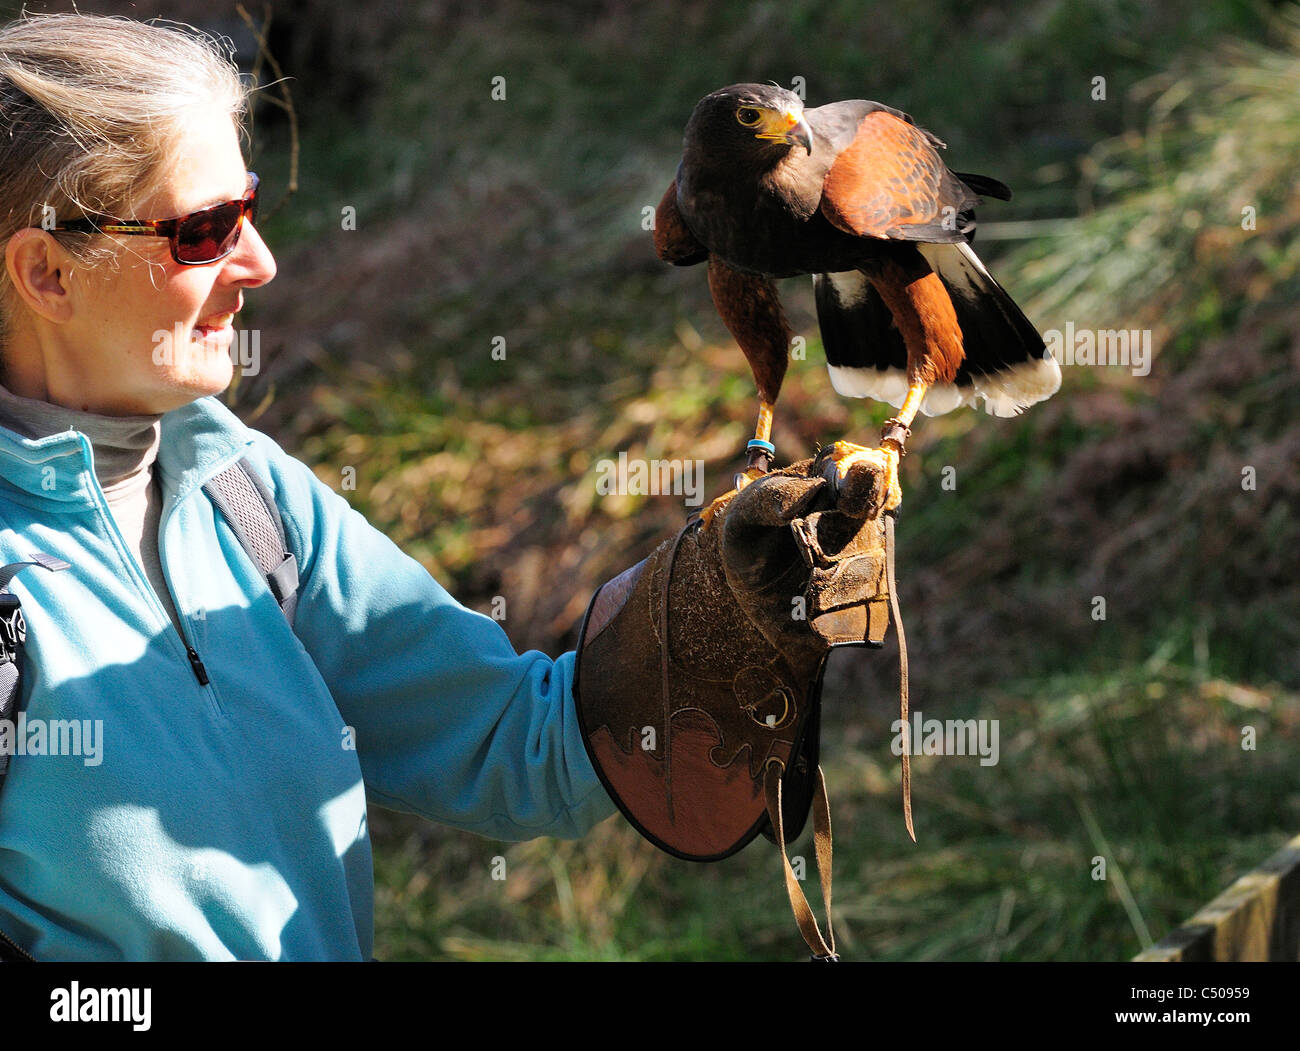 Monty 'the Harris Hawk   tethered  to  the glove at the  Birds of Prey Center   Kielderwater and Forest park - Stock Image